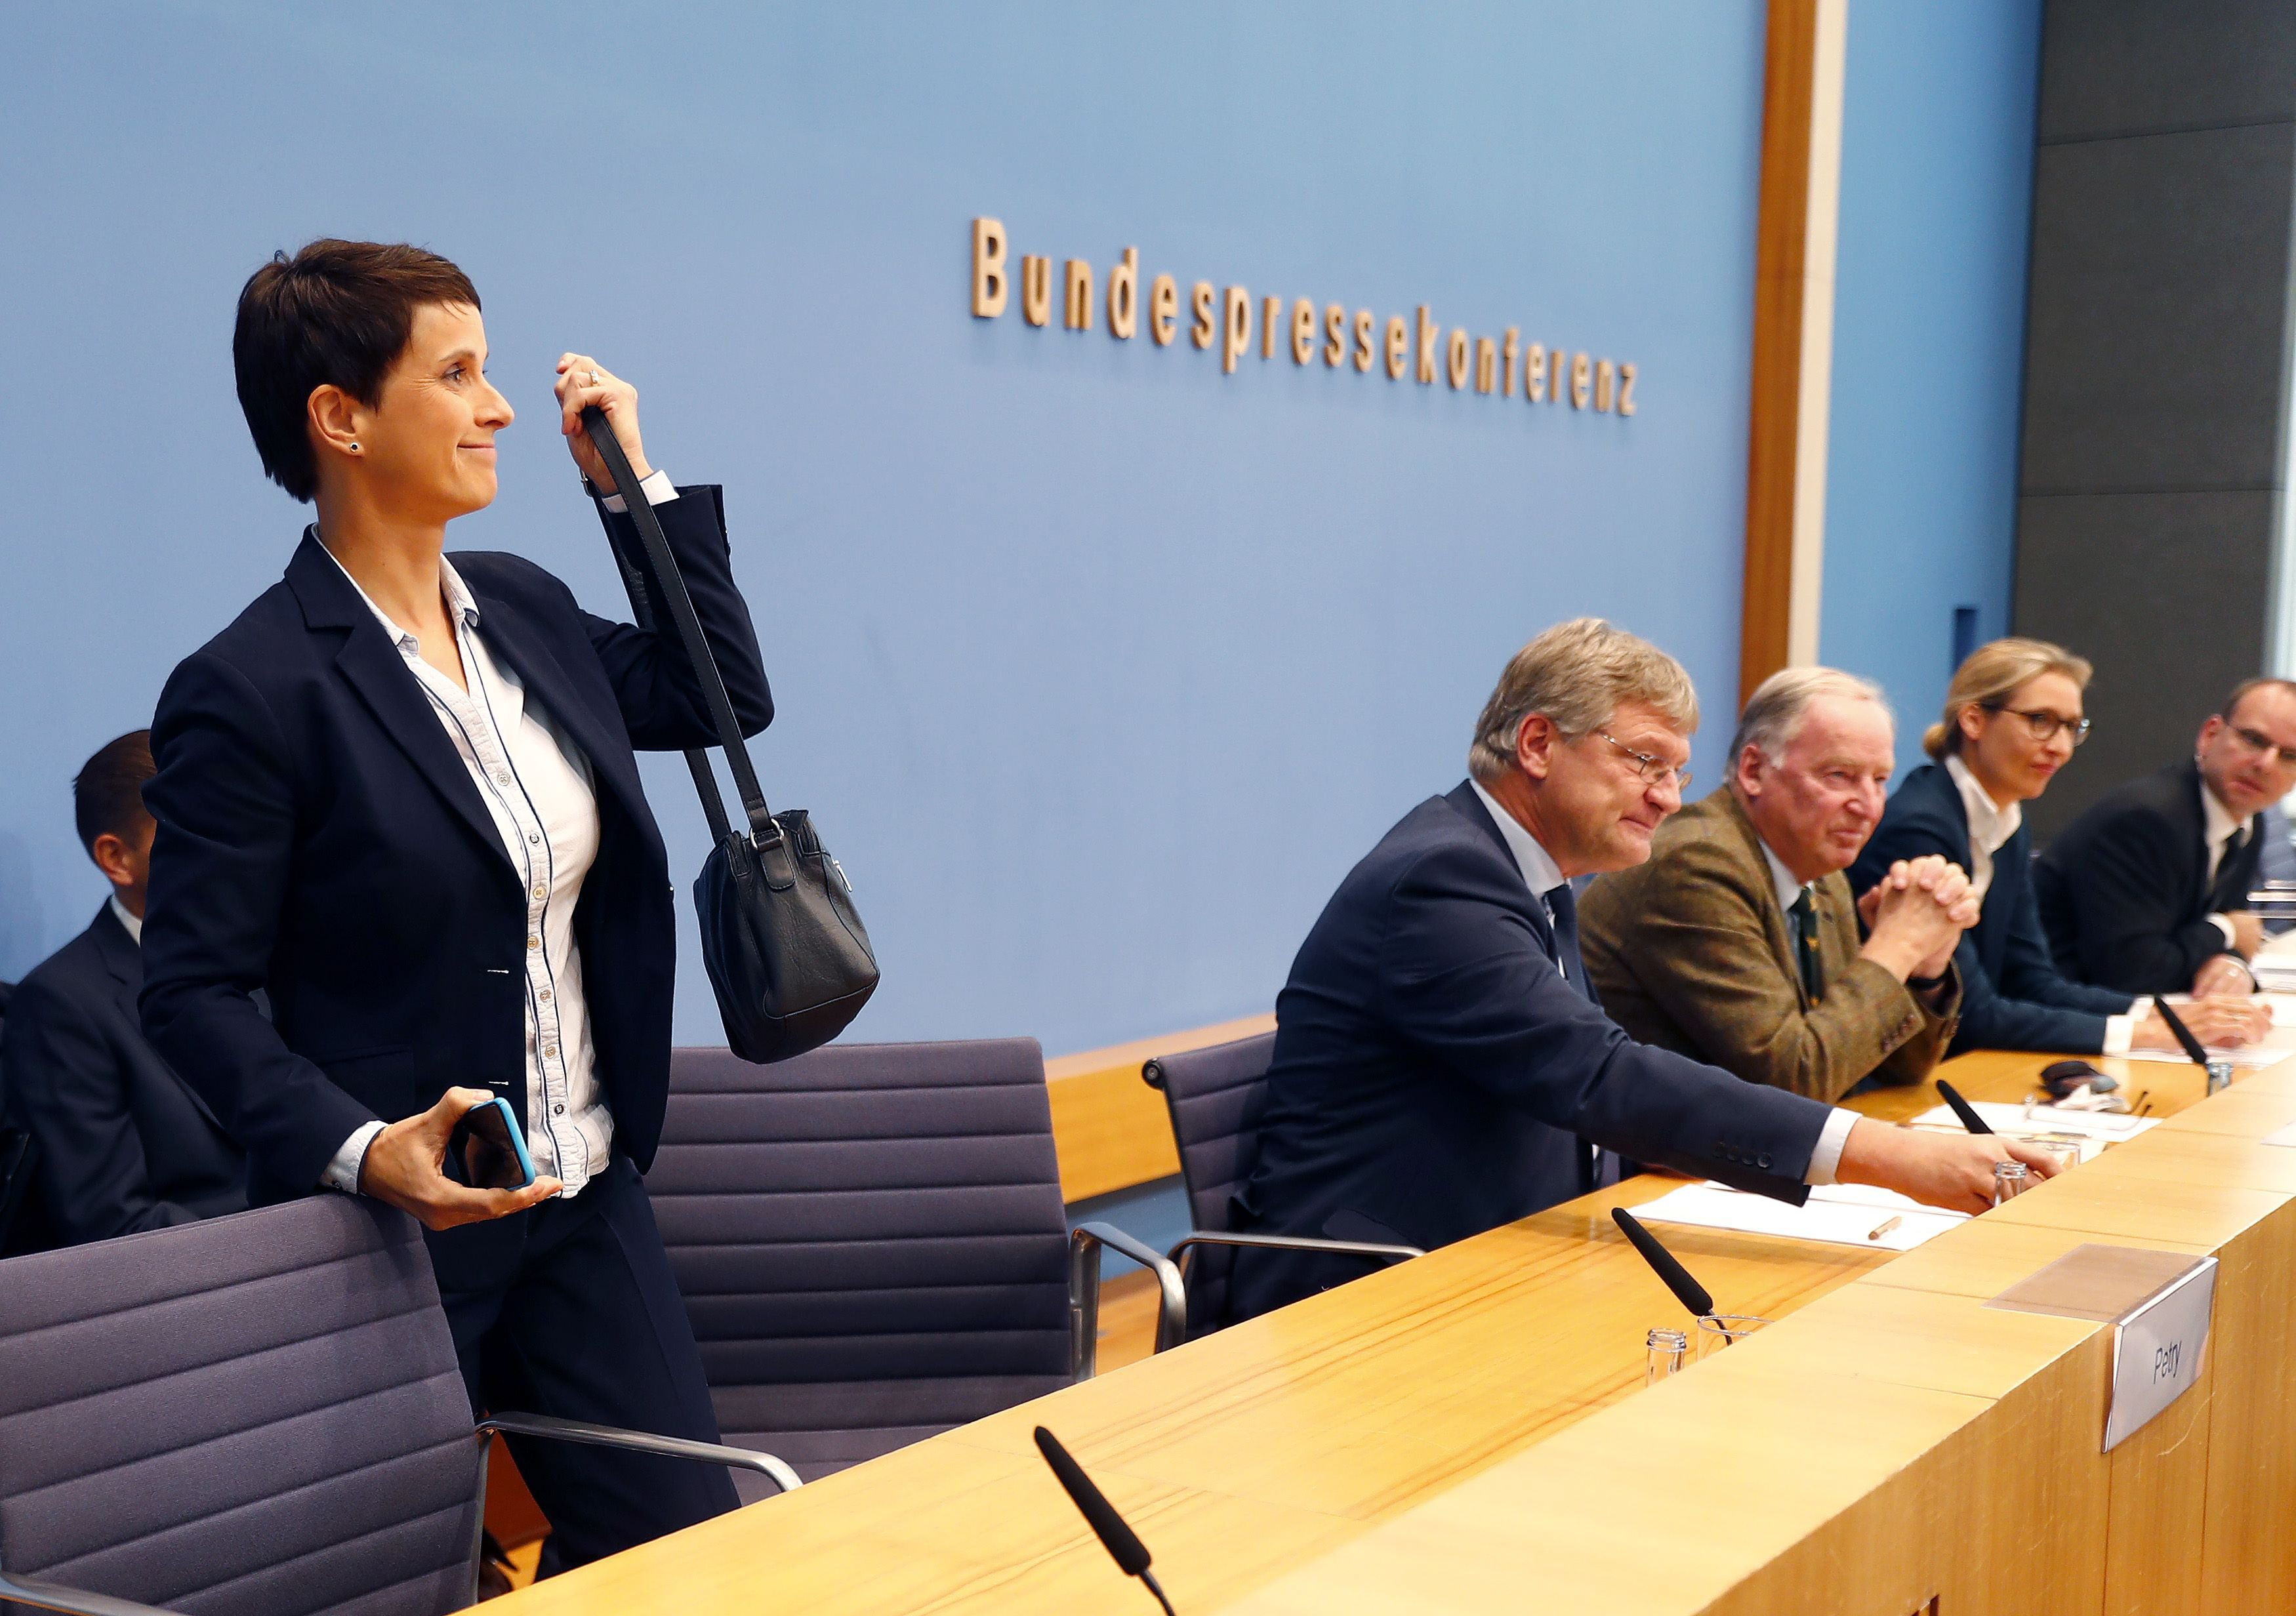 Frauke Petry, chairwoman of the anti-immigration party Alternative fuer Deutschland (AfD) leaves a news conference next to Joerg Meuthen (2nd L), leader of the party and top candidates Alice Weidel (2nd R) and Alexander Gauland in Berlin, Germany, September 25, 2017. REUTERS/Fabrizio Bensch